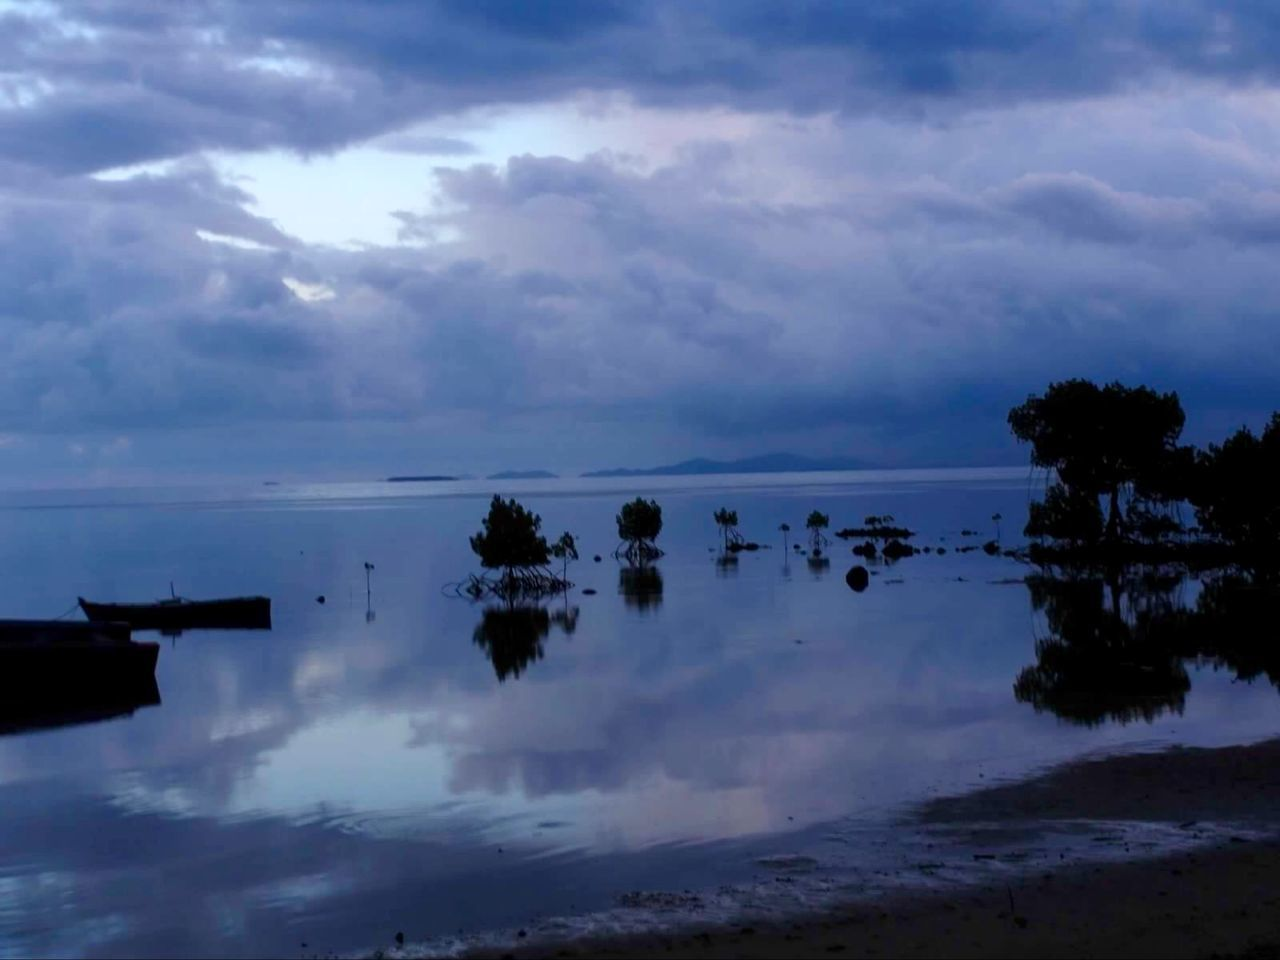 cloud - sky, sky, tranquility, tranquil scene, reflection, no people, nature, water, beauty in nature, scenics, outdoors, silhouette, tree, day, horizon over water